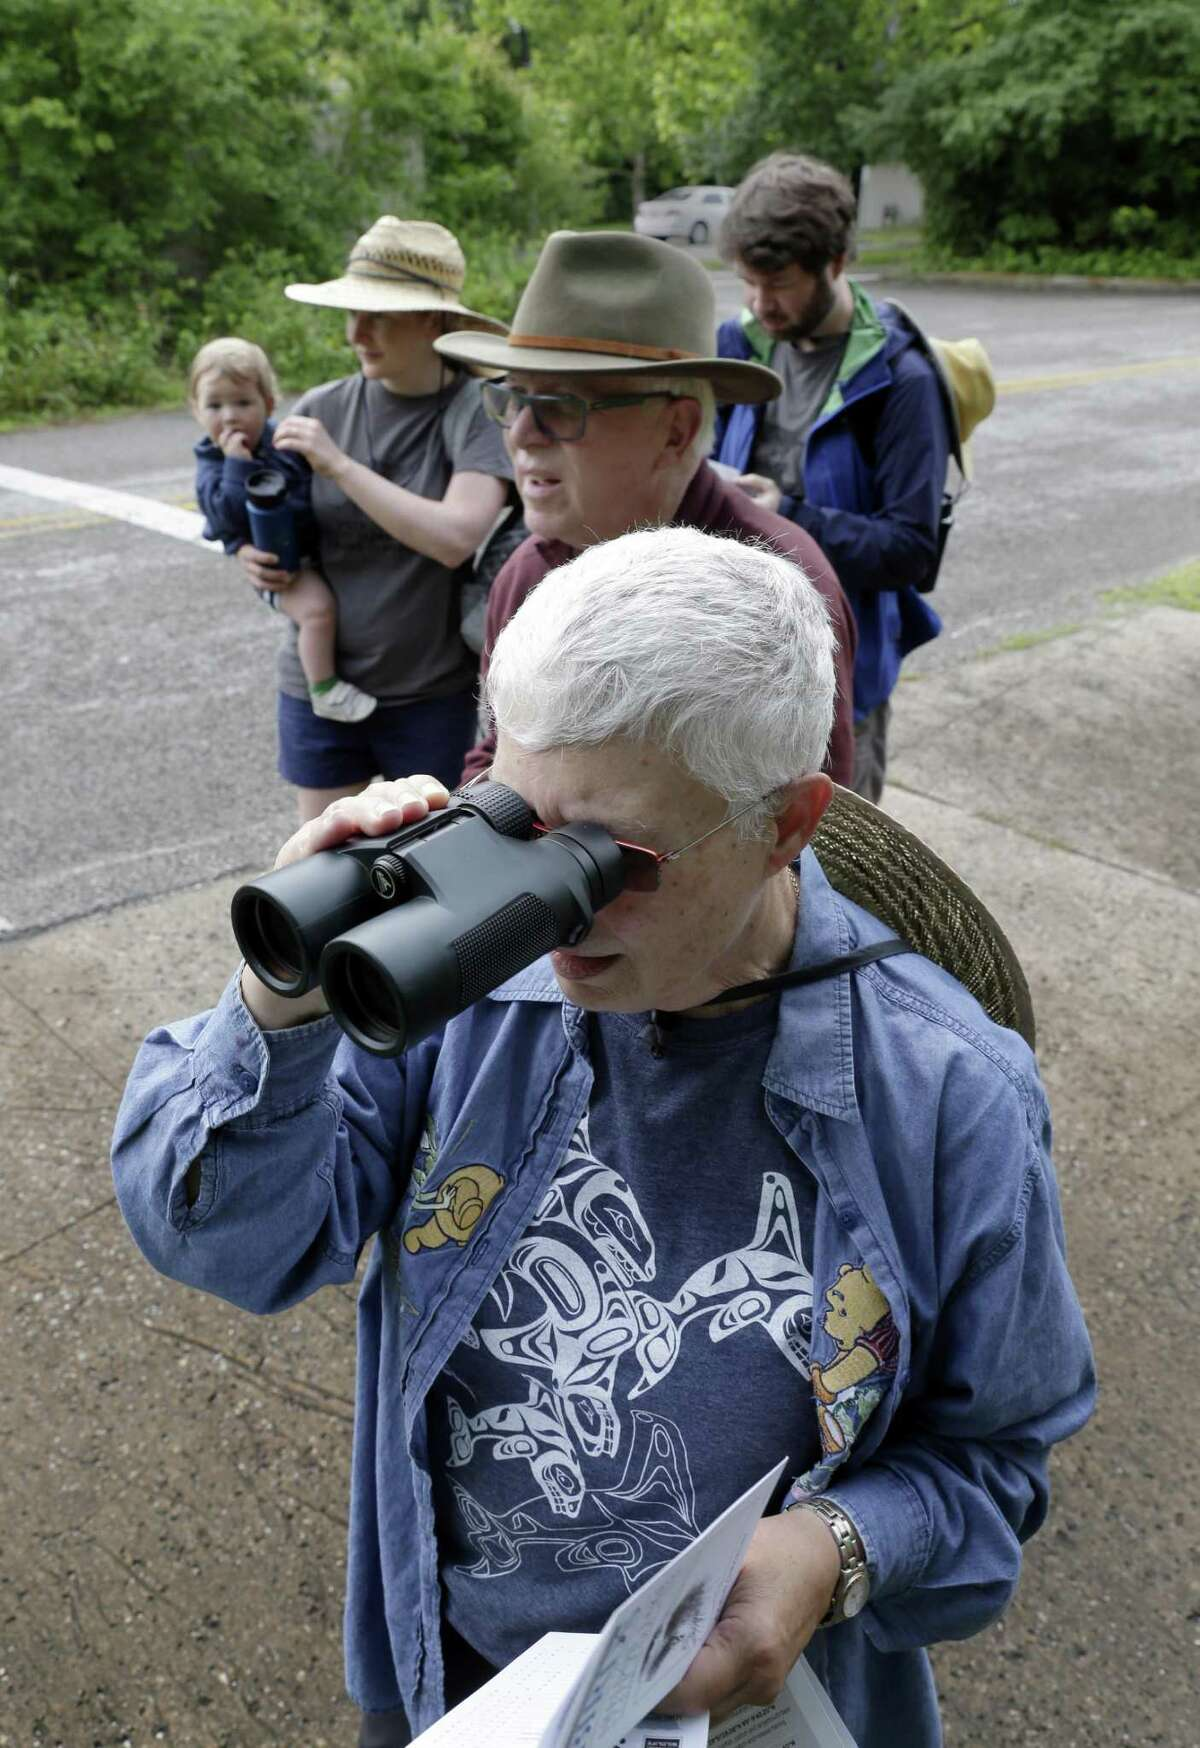 (From left) Isaac Touzel, age 11 mos., held by his mother Marla Touzel, Marion Touzel, Tim Touzel and Joseph Touzel begin looking for birds as they compete in The Great Texas Birding Classic at Sheldon Lake State Park Sunday, May. 12, 2019 in northeast Houston, TX.